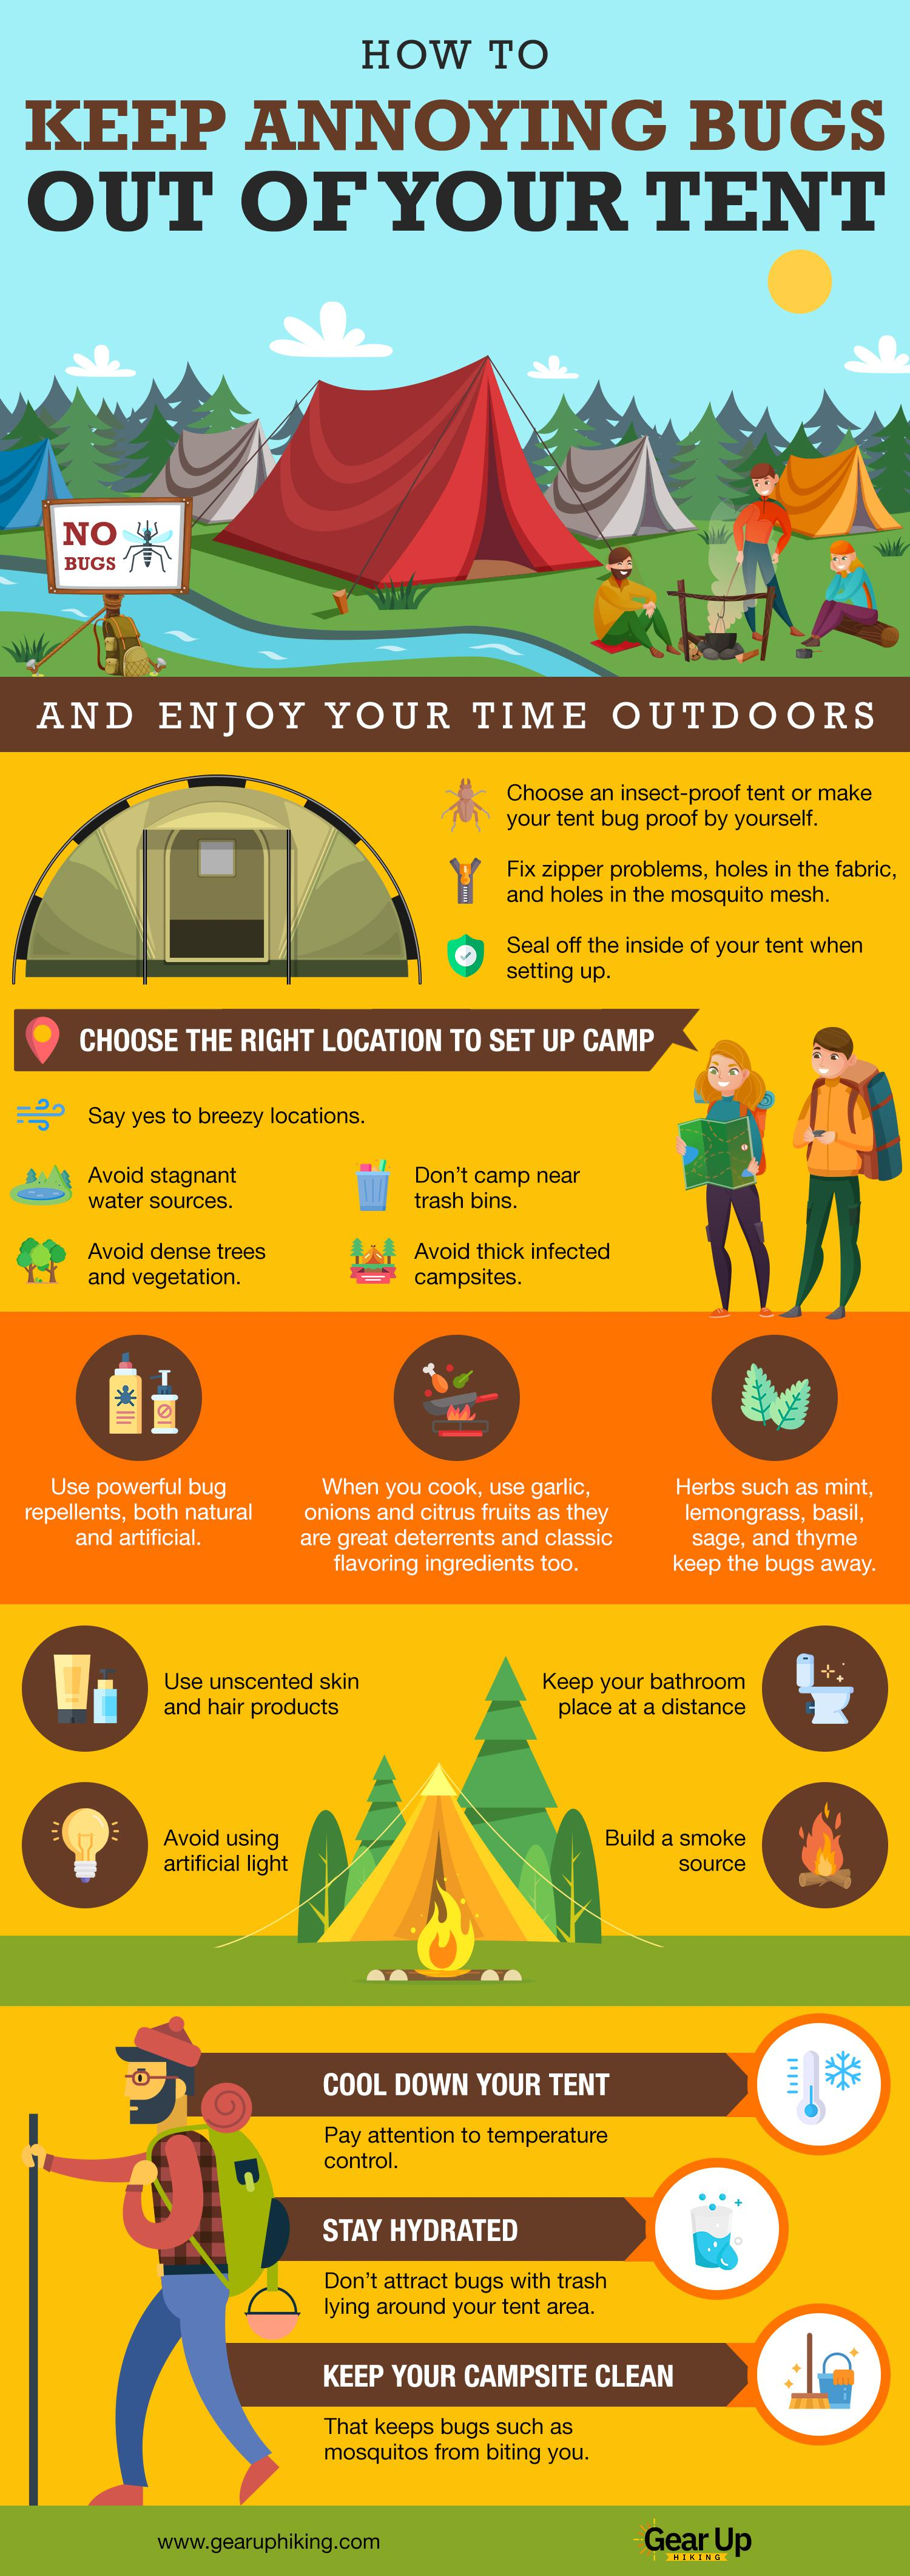 How To Keep Annoying Bugs Out Of Your Tent